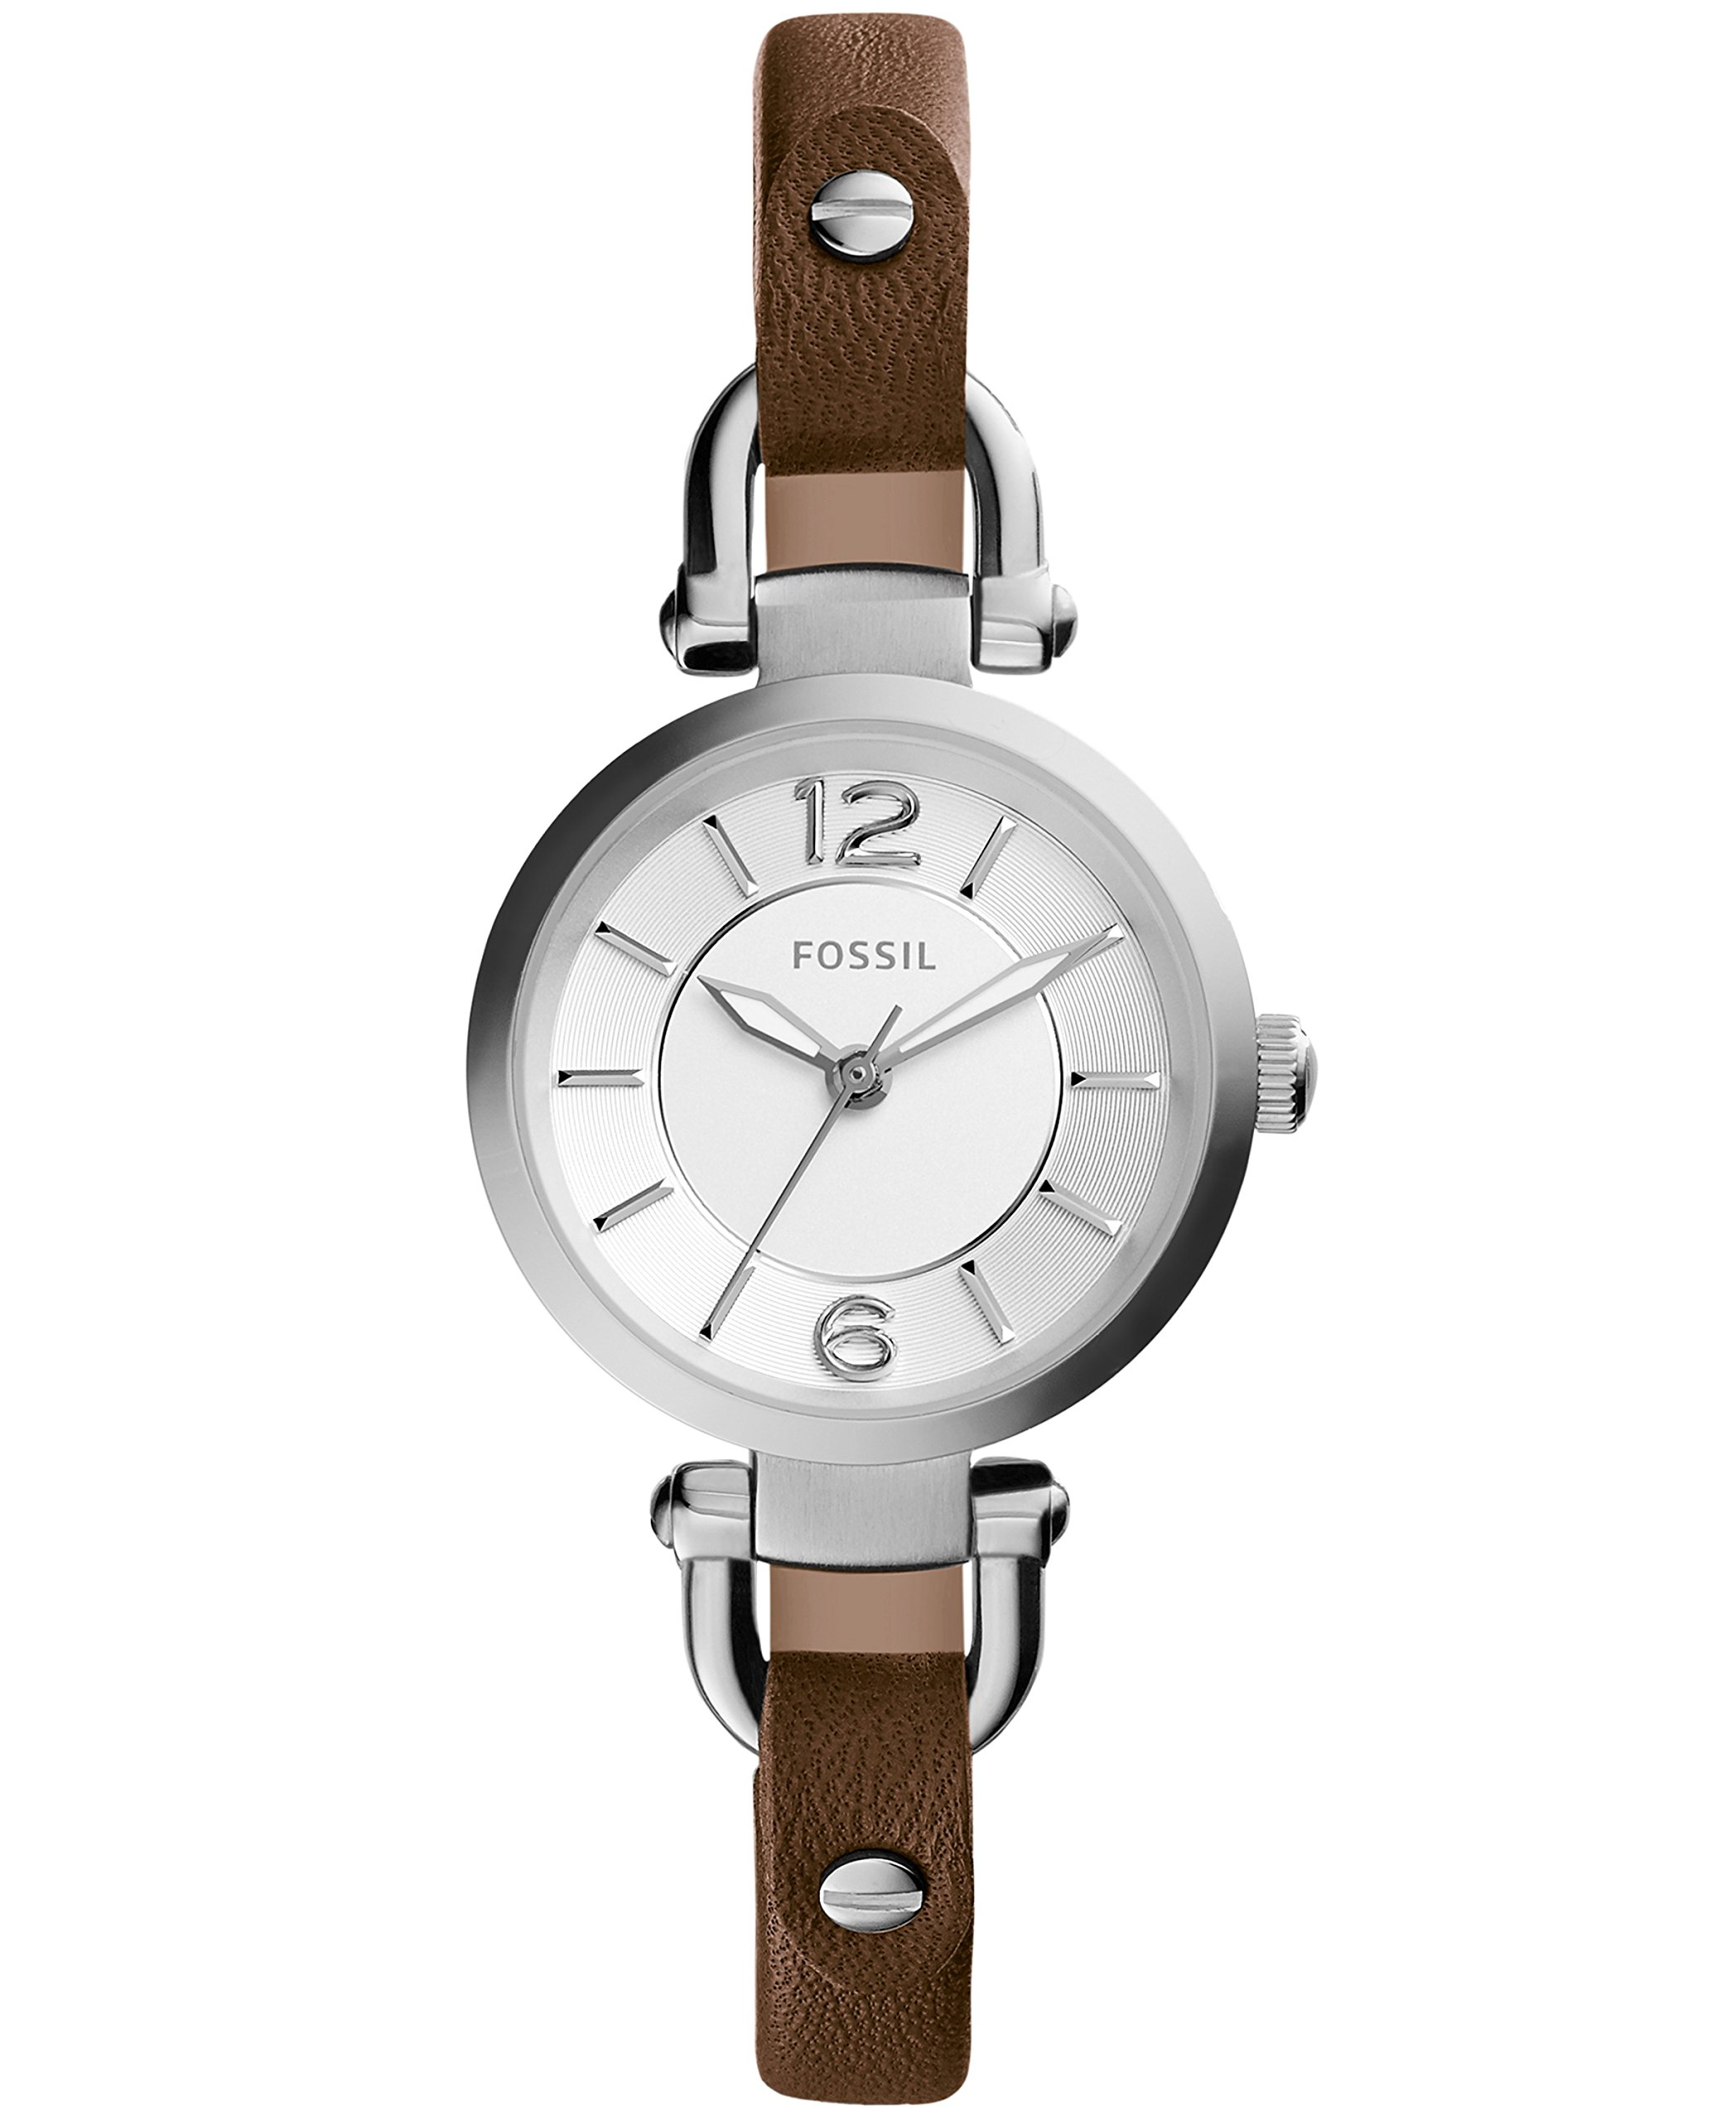 Fossil Women's Mini Georgia Quartz Stainless Steel and Leather Casual Watch, Color: Silver, Brown (Model: ES3861) by Fossil